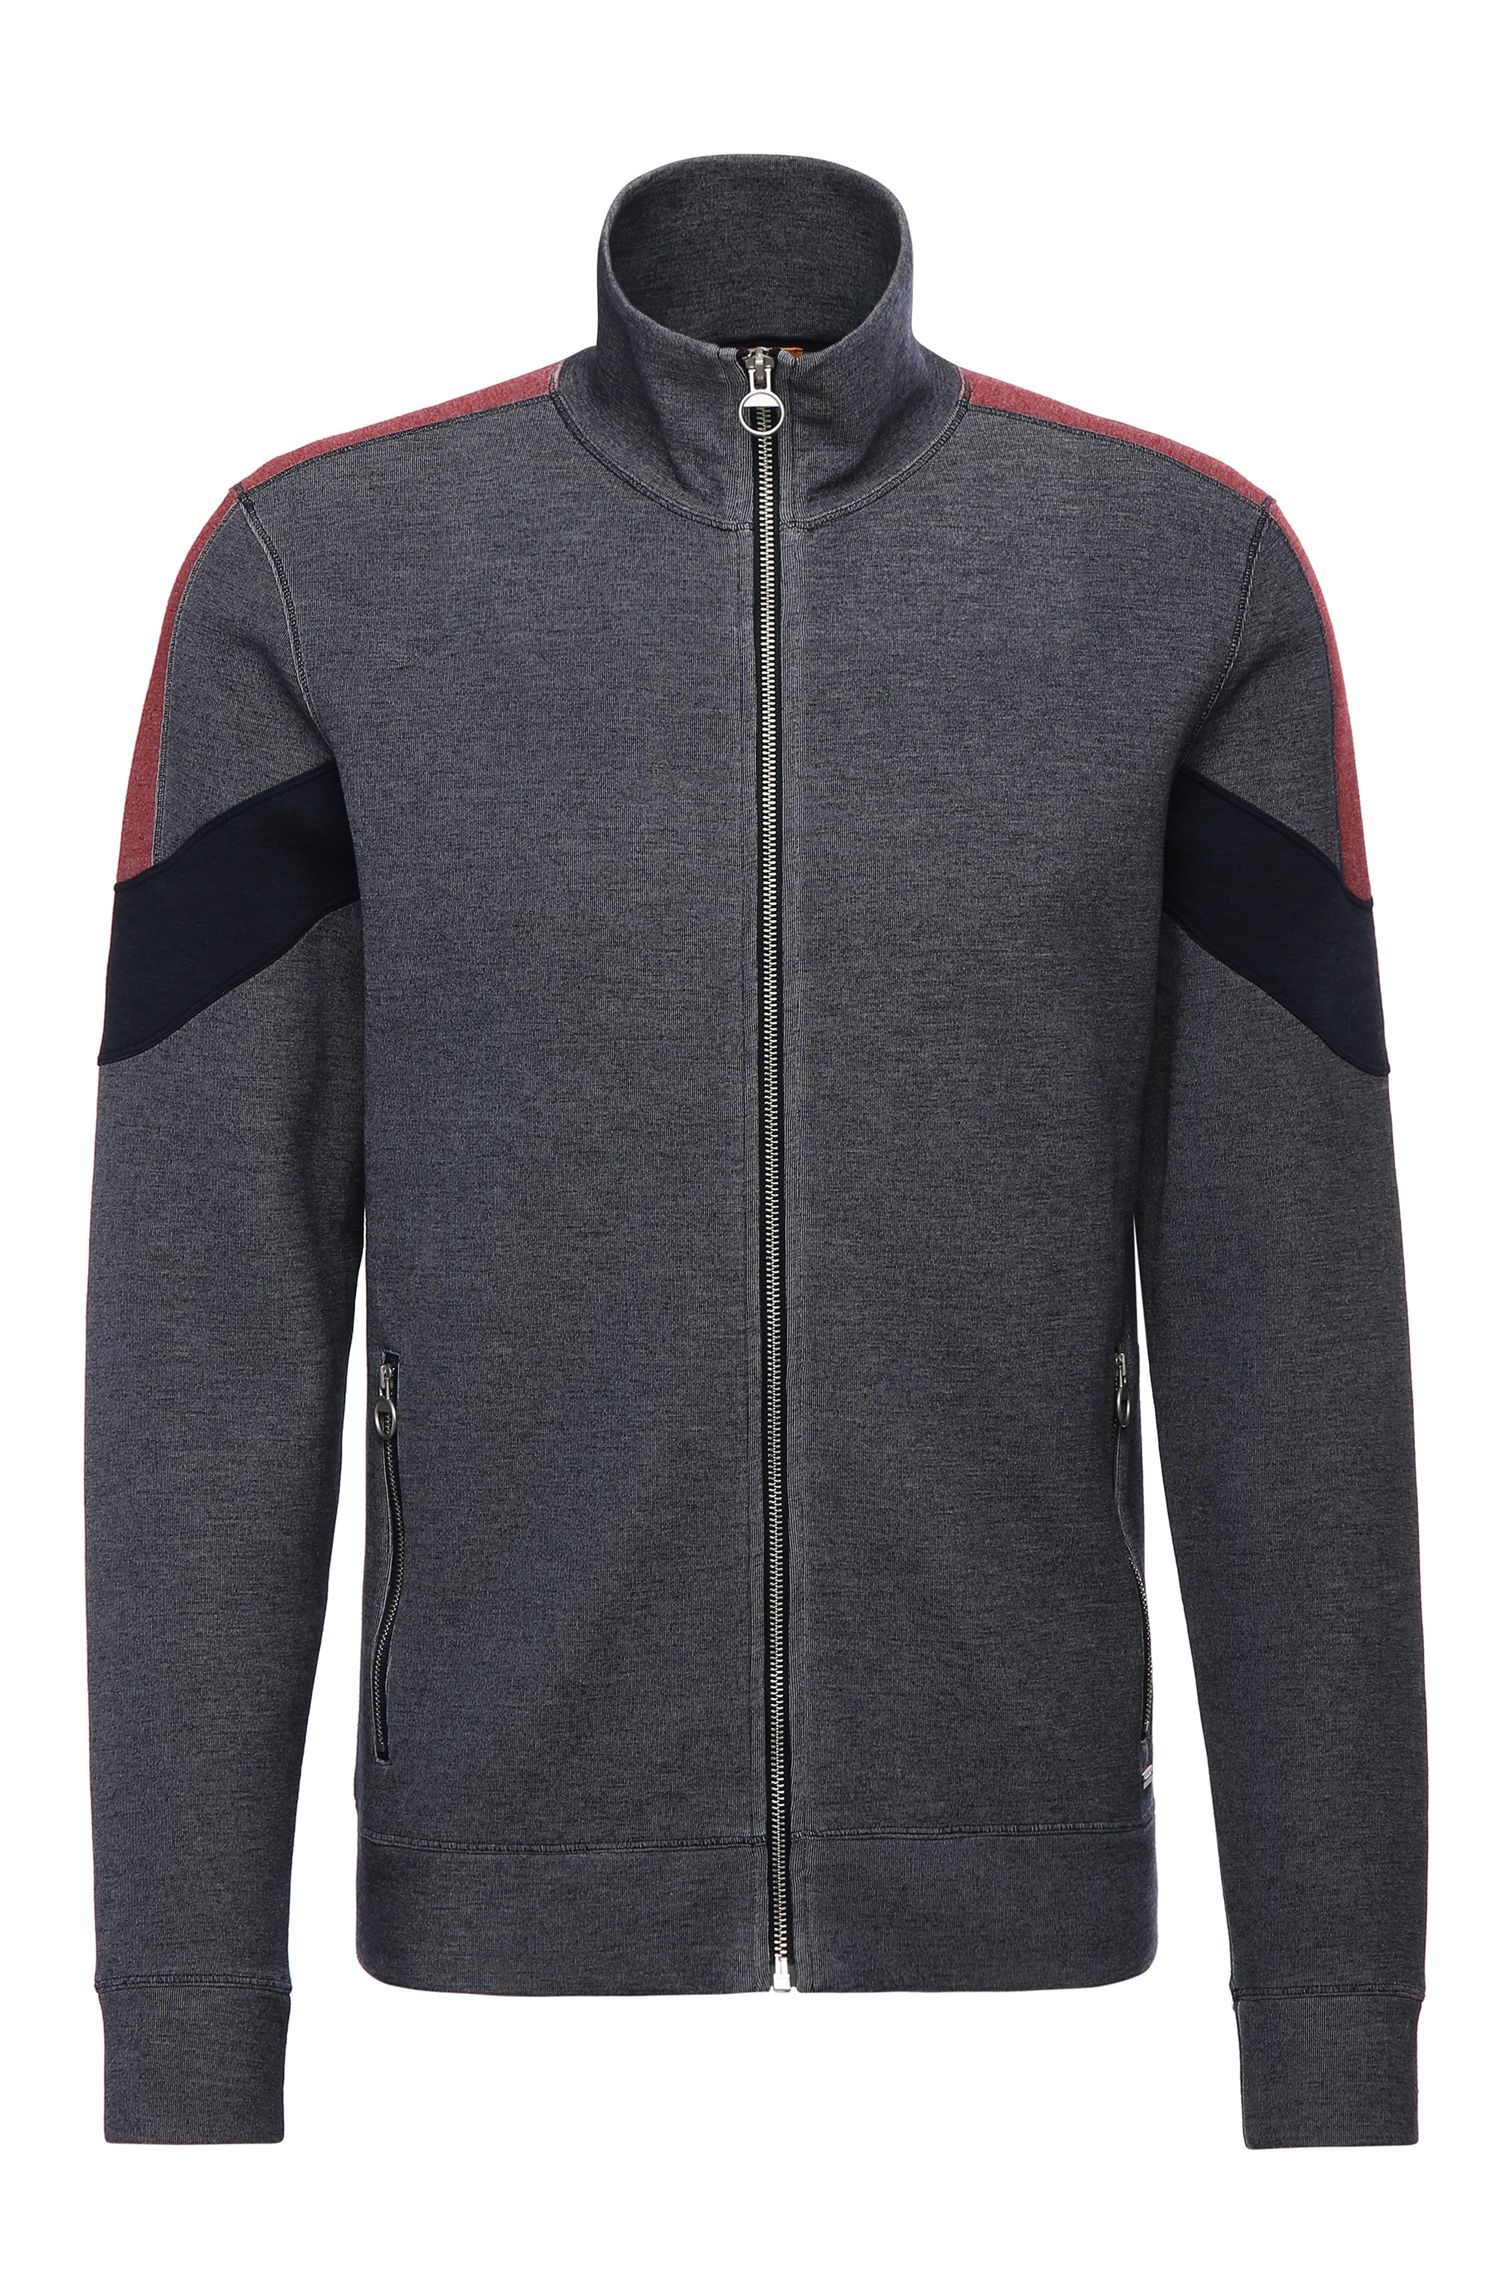 Blouson sweat en coton mélangé : « Zycle »